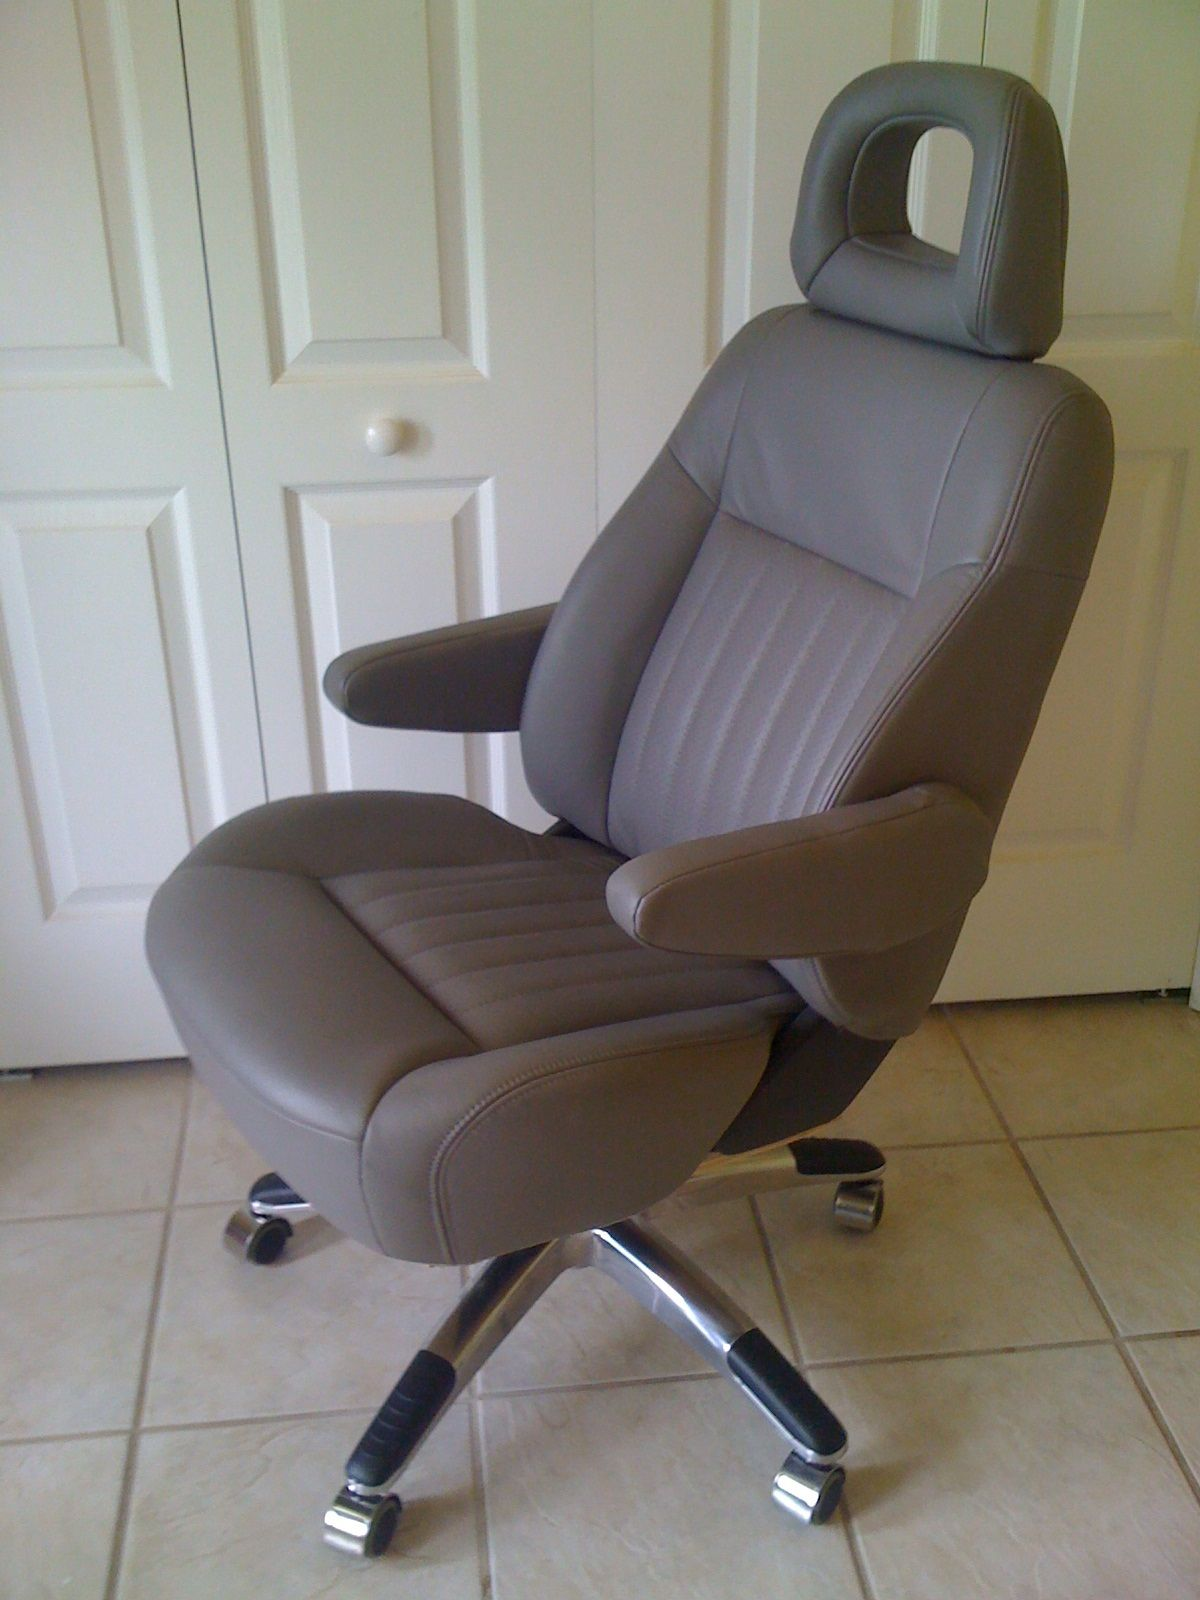 Car seat transformed into executive office chair by Planet Upcycle